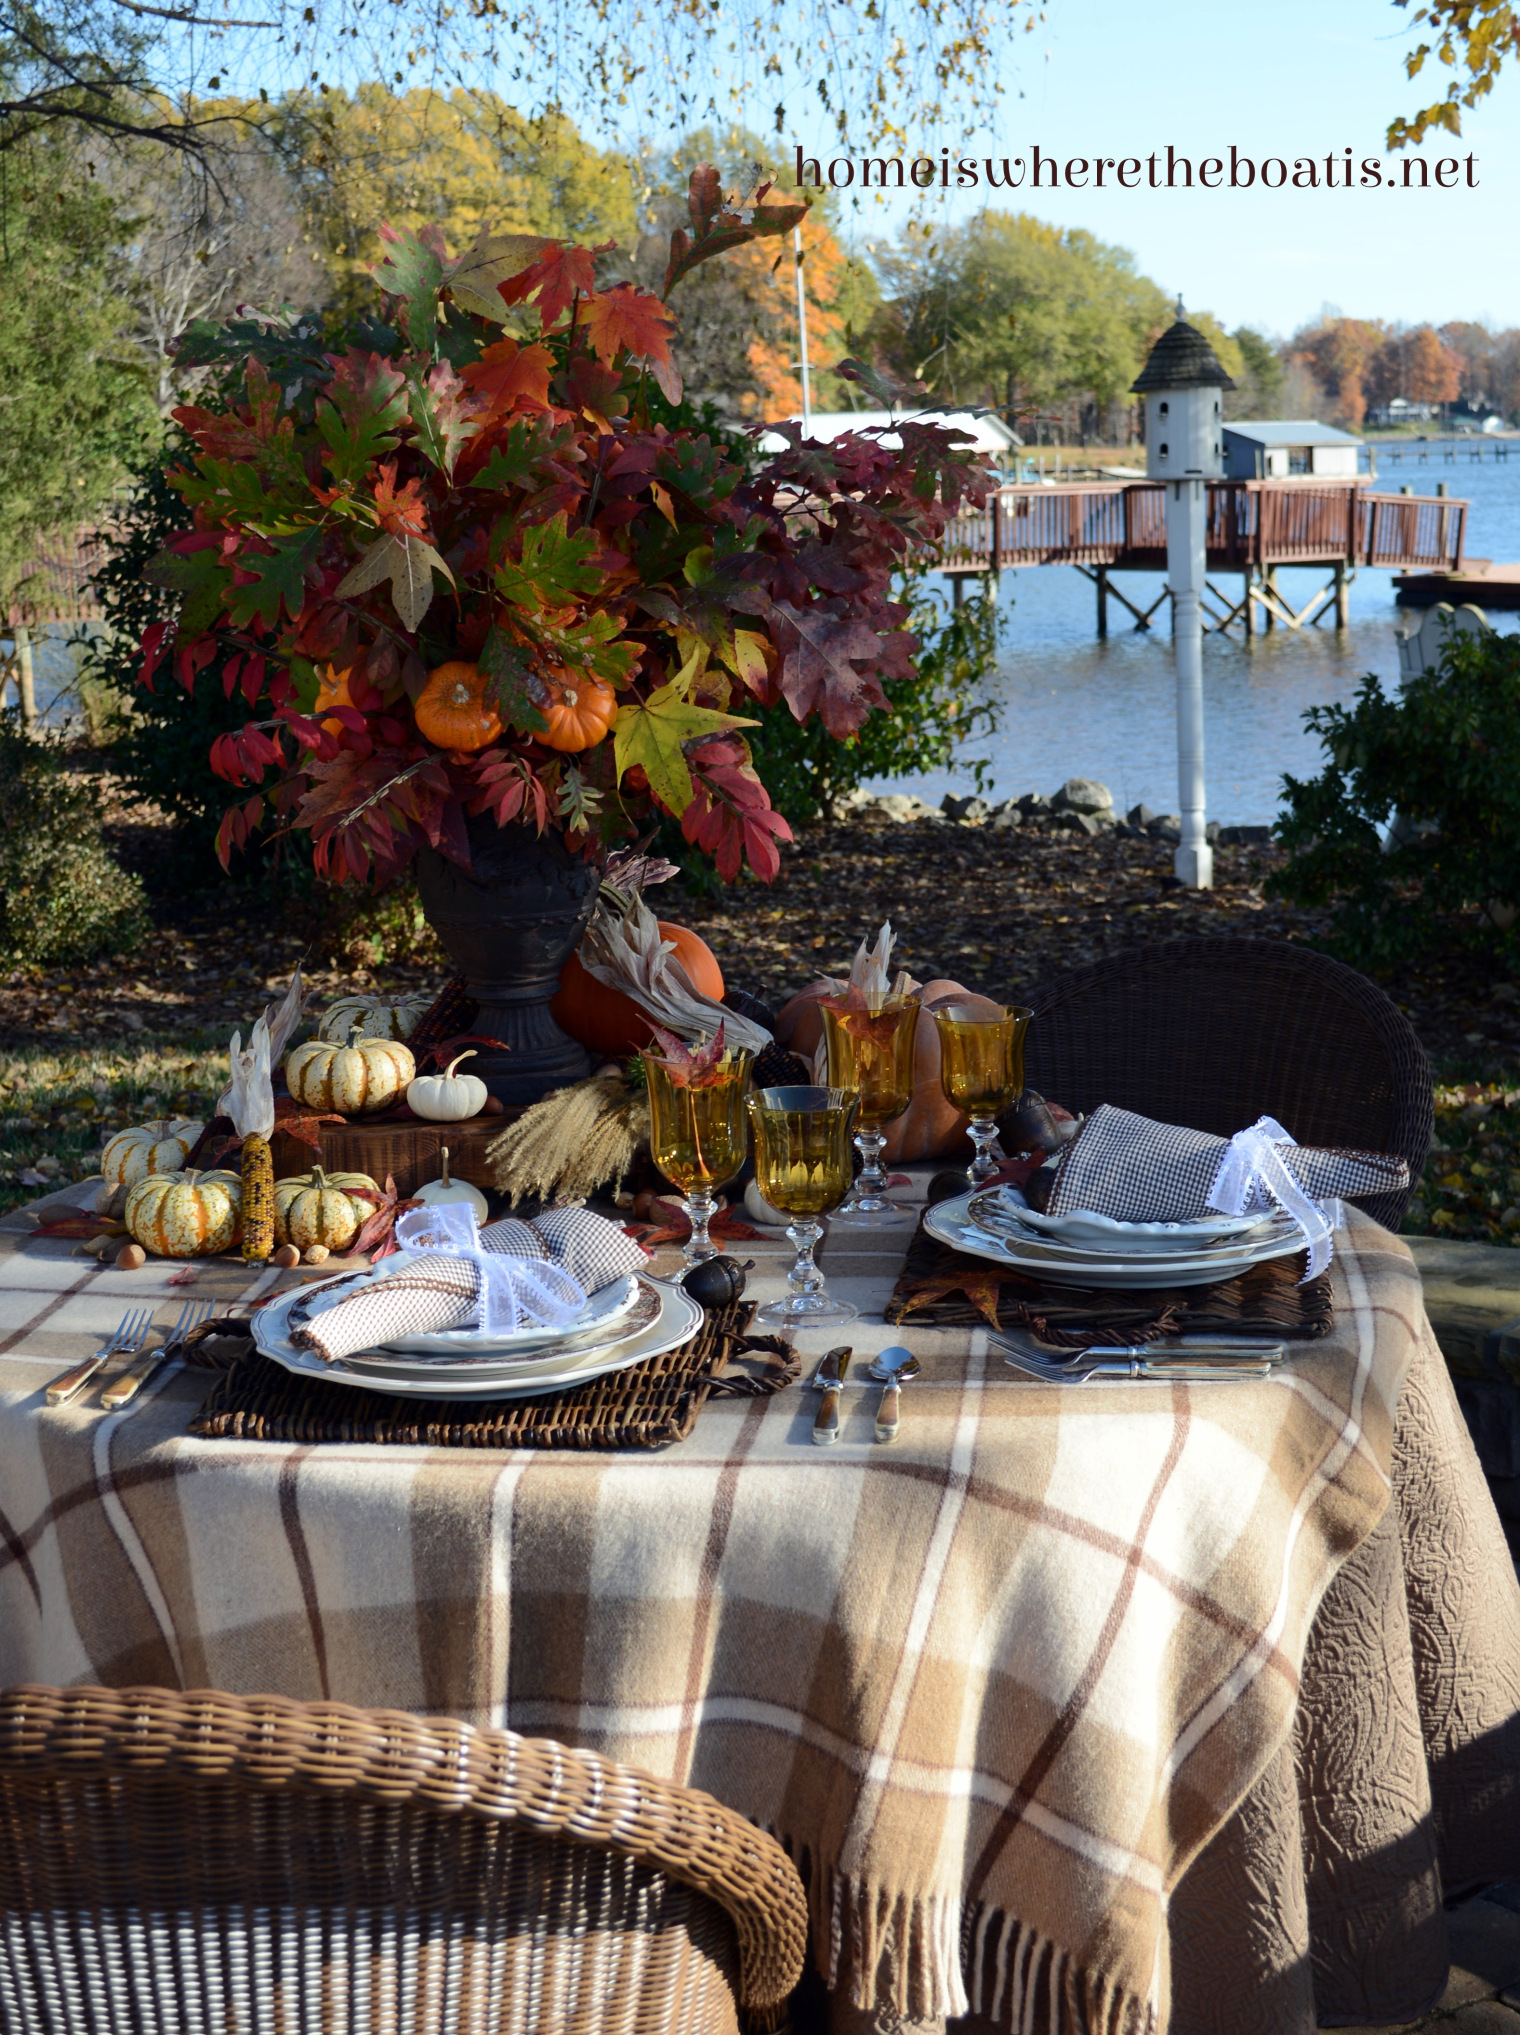 Creative Ideas for Fall or Thanksgiving Table Settings and Home Decor 26